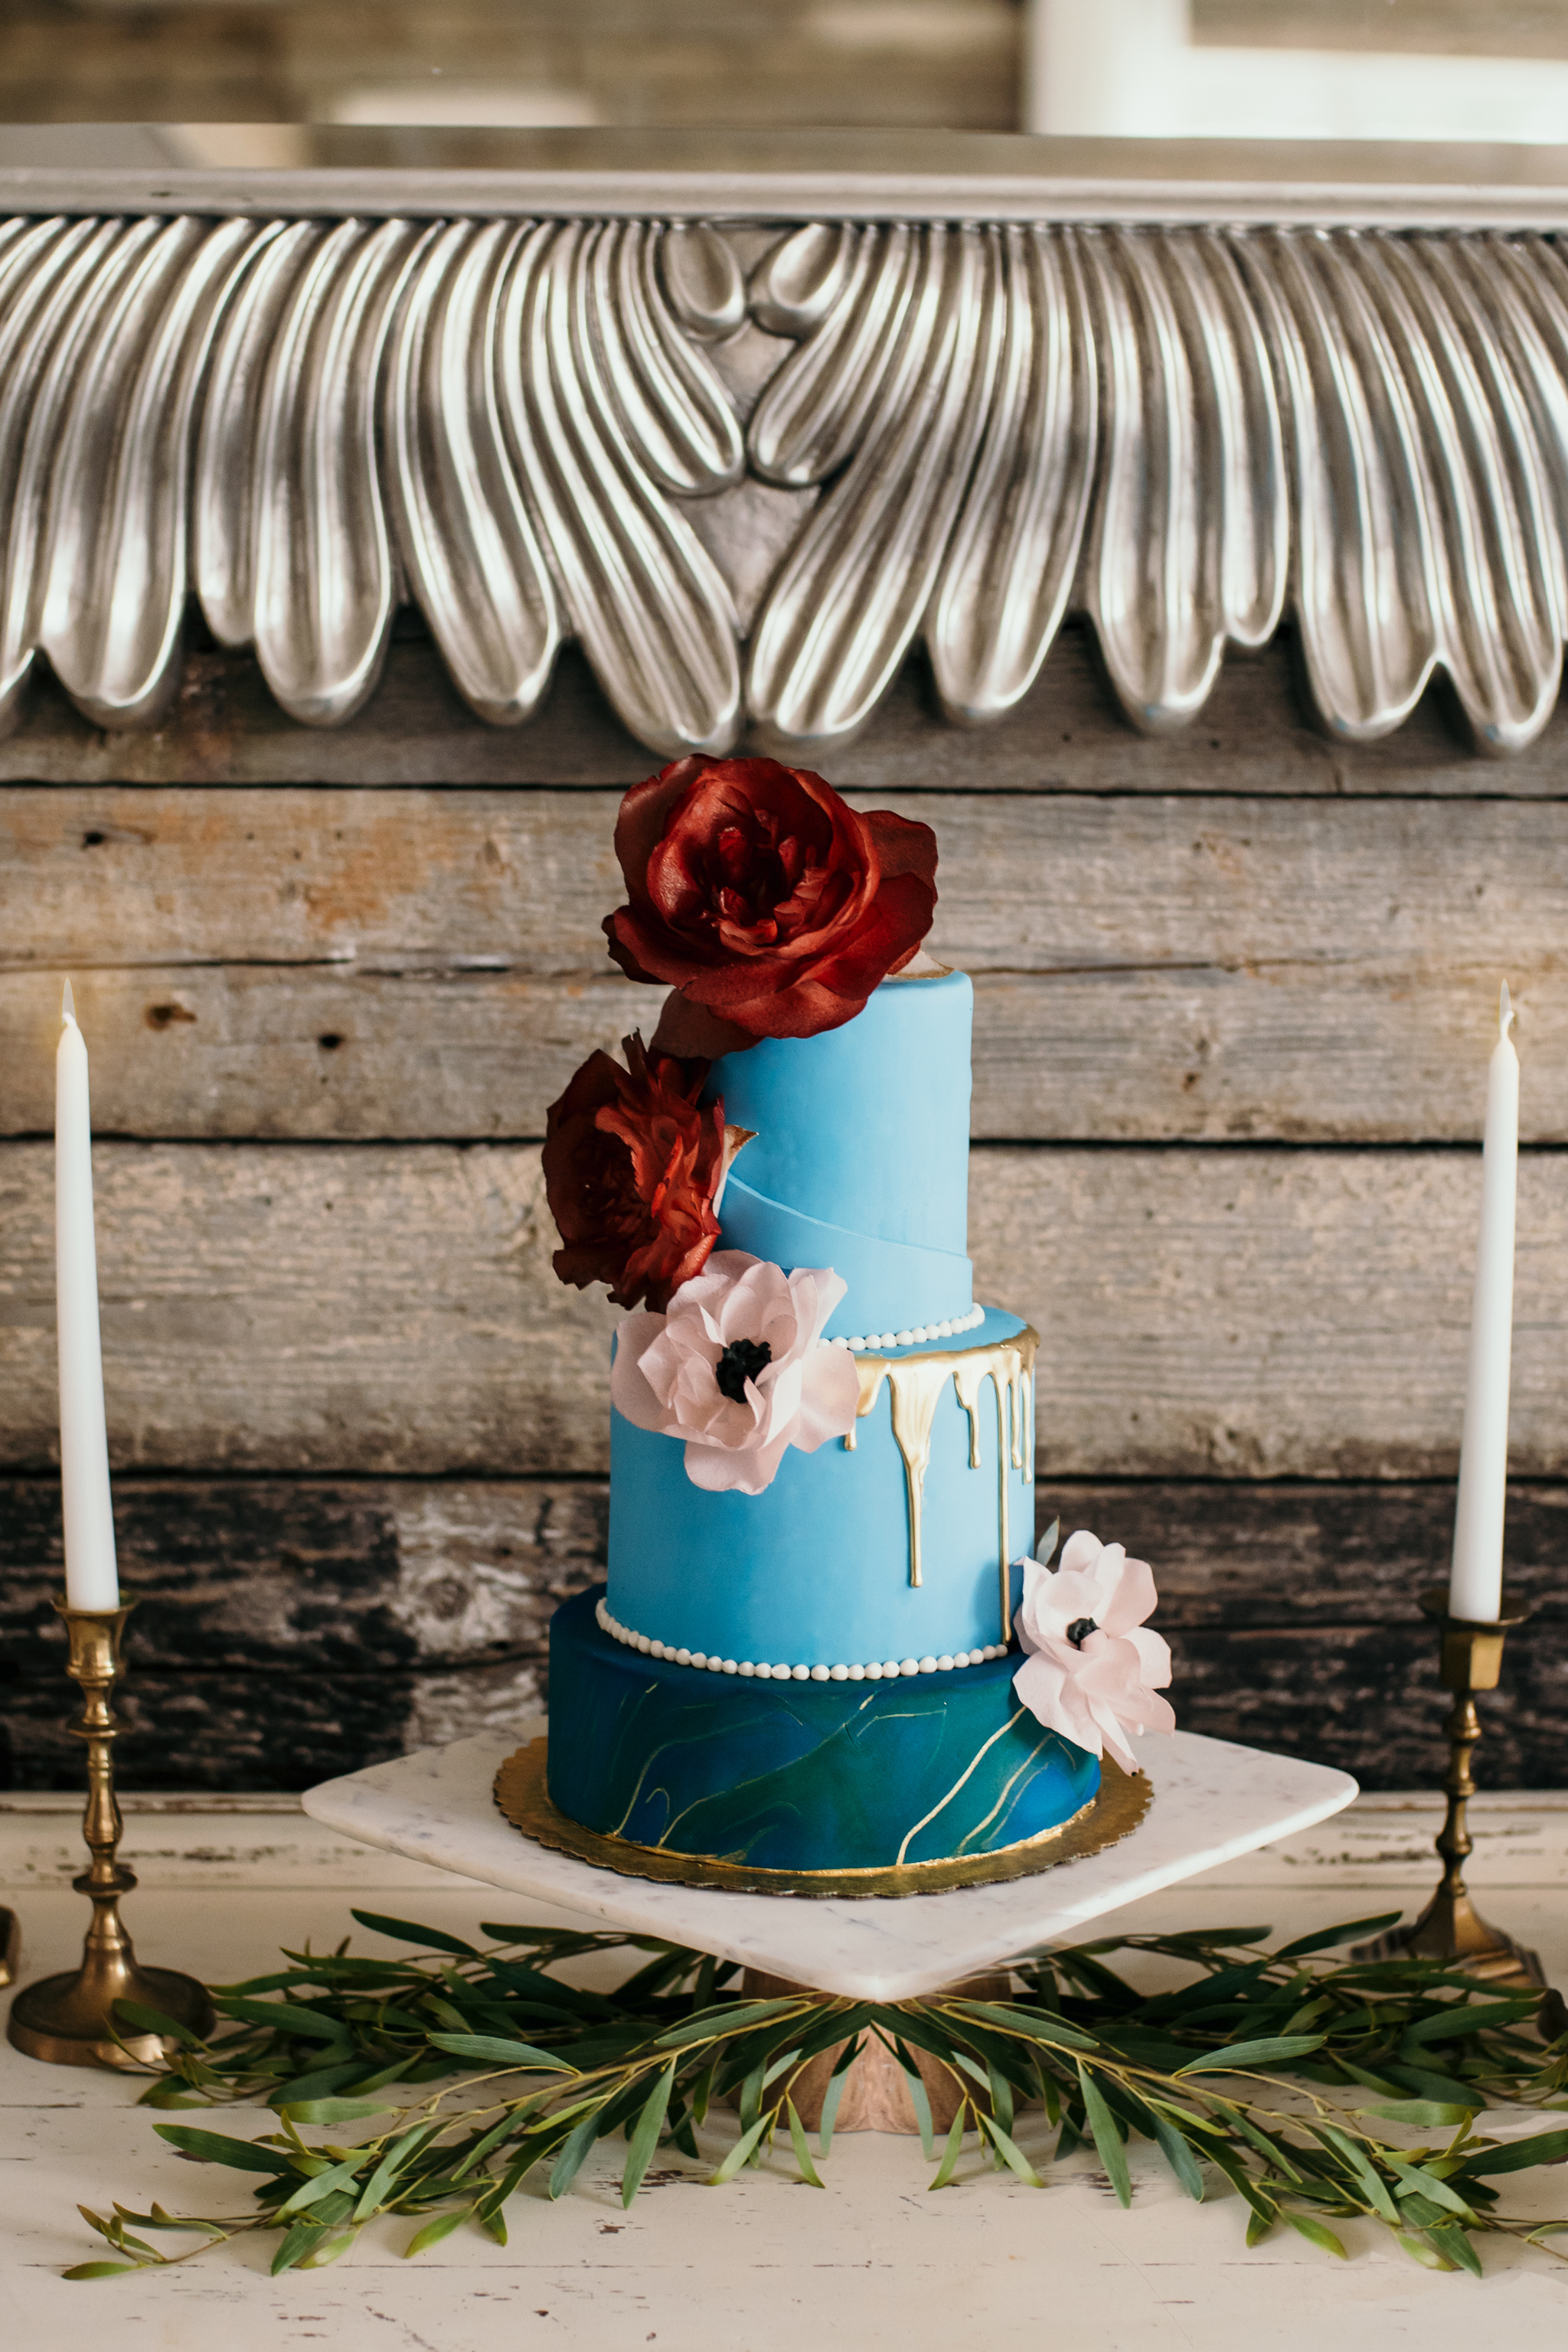 Jewel Tone Wedding Styled Shoot_Silver Knot_Montana Wedding Planner_Montana Wedding Photographer_Montana Wedding Videography_Honeybee Weddings-0689.jpg